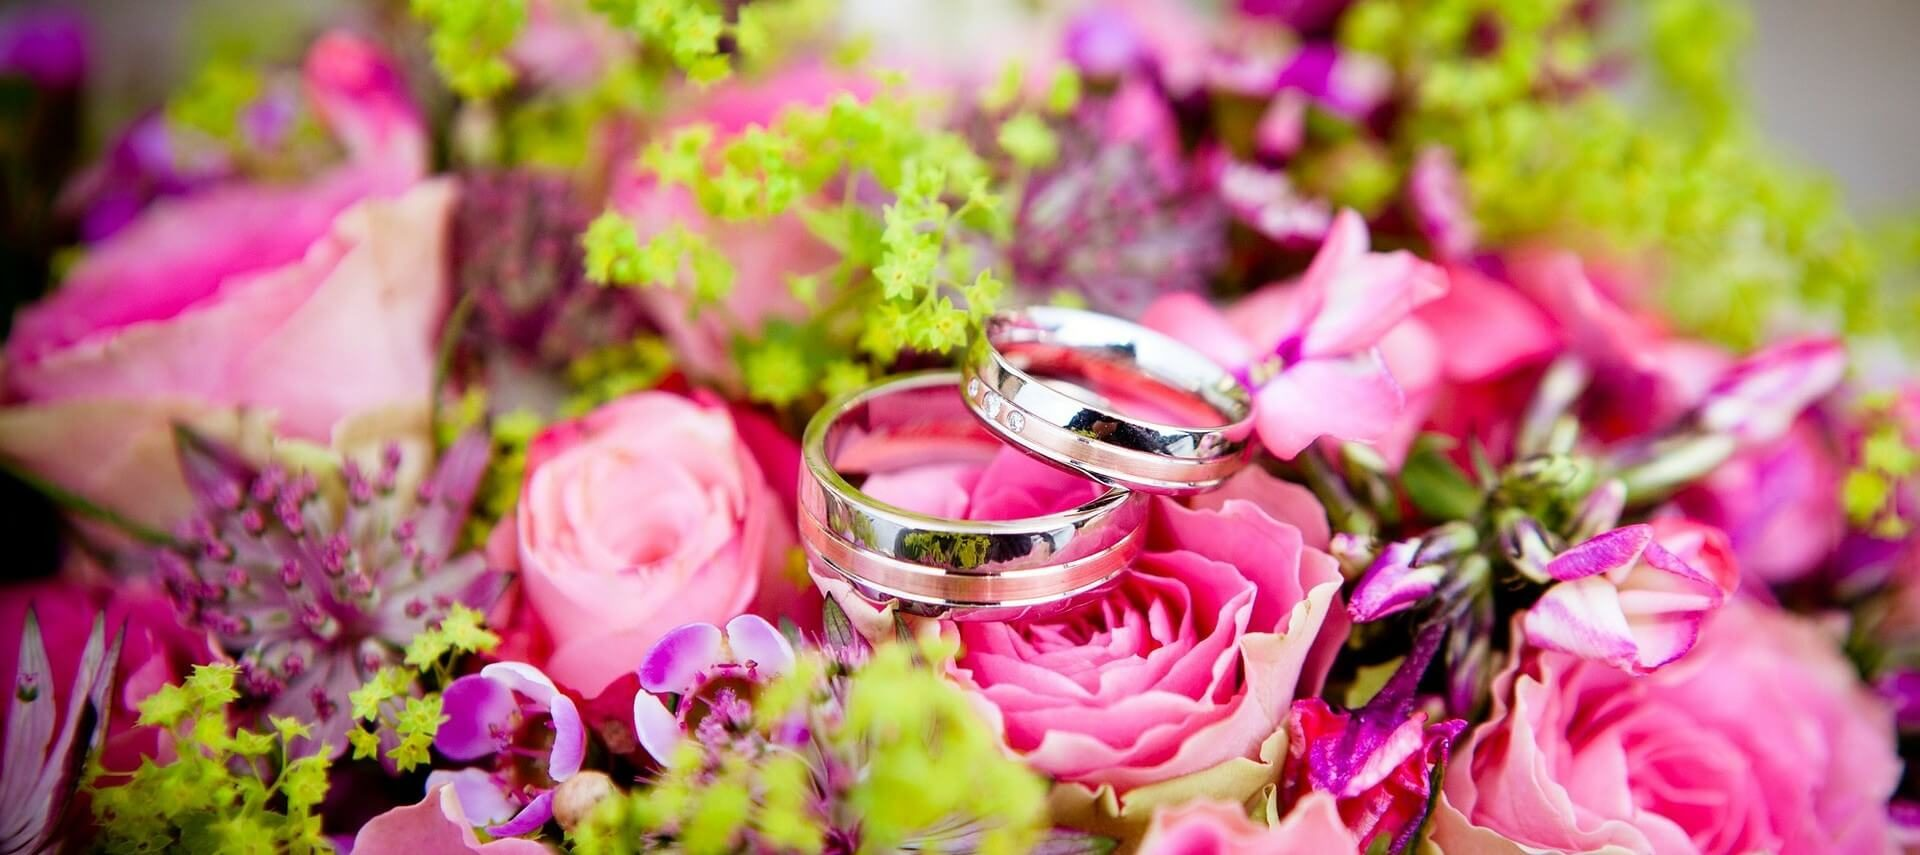 Two silver wedding rings sitting atop a bright pink and purple bouquet of flowers with green springs